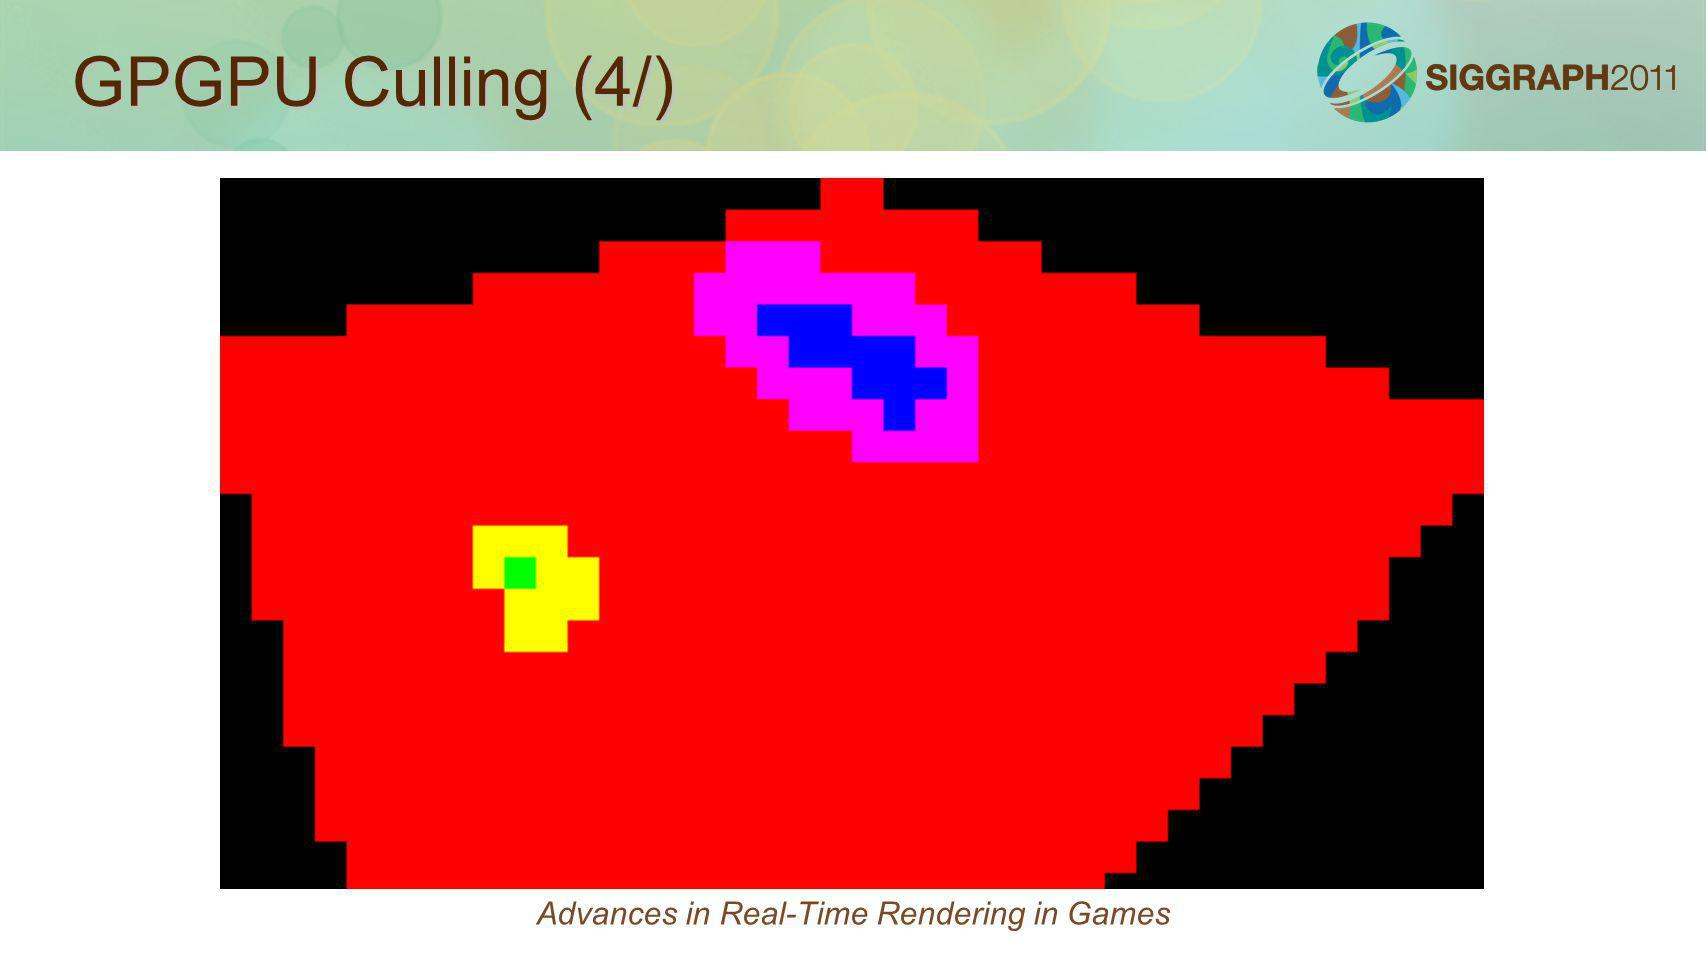 GPGPU Culling (4/) Advances in Real-Time Rendering in Games